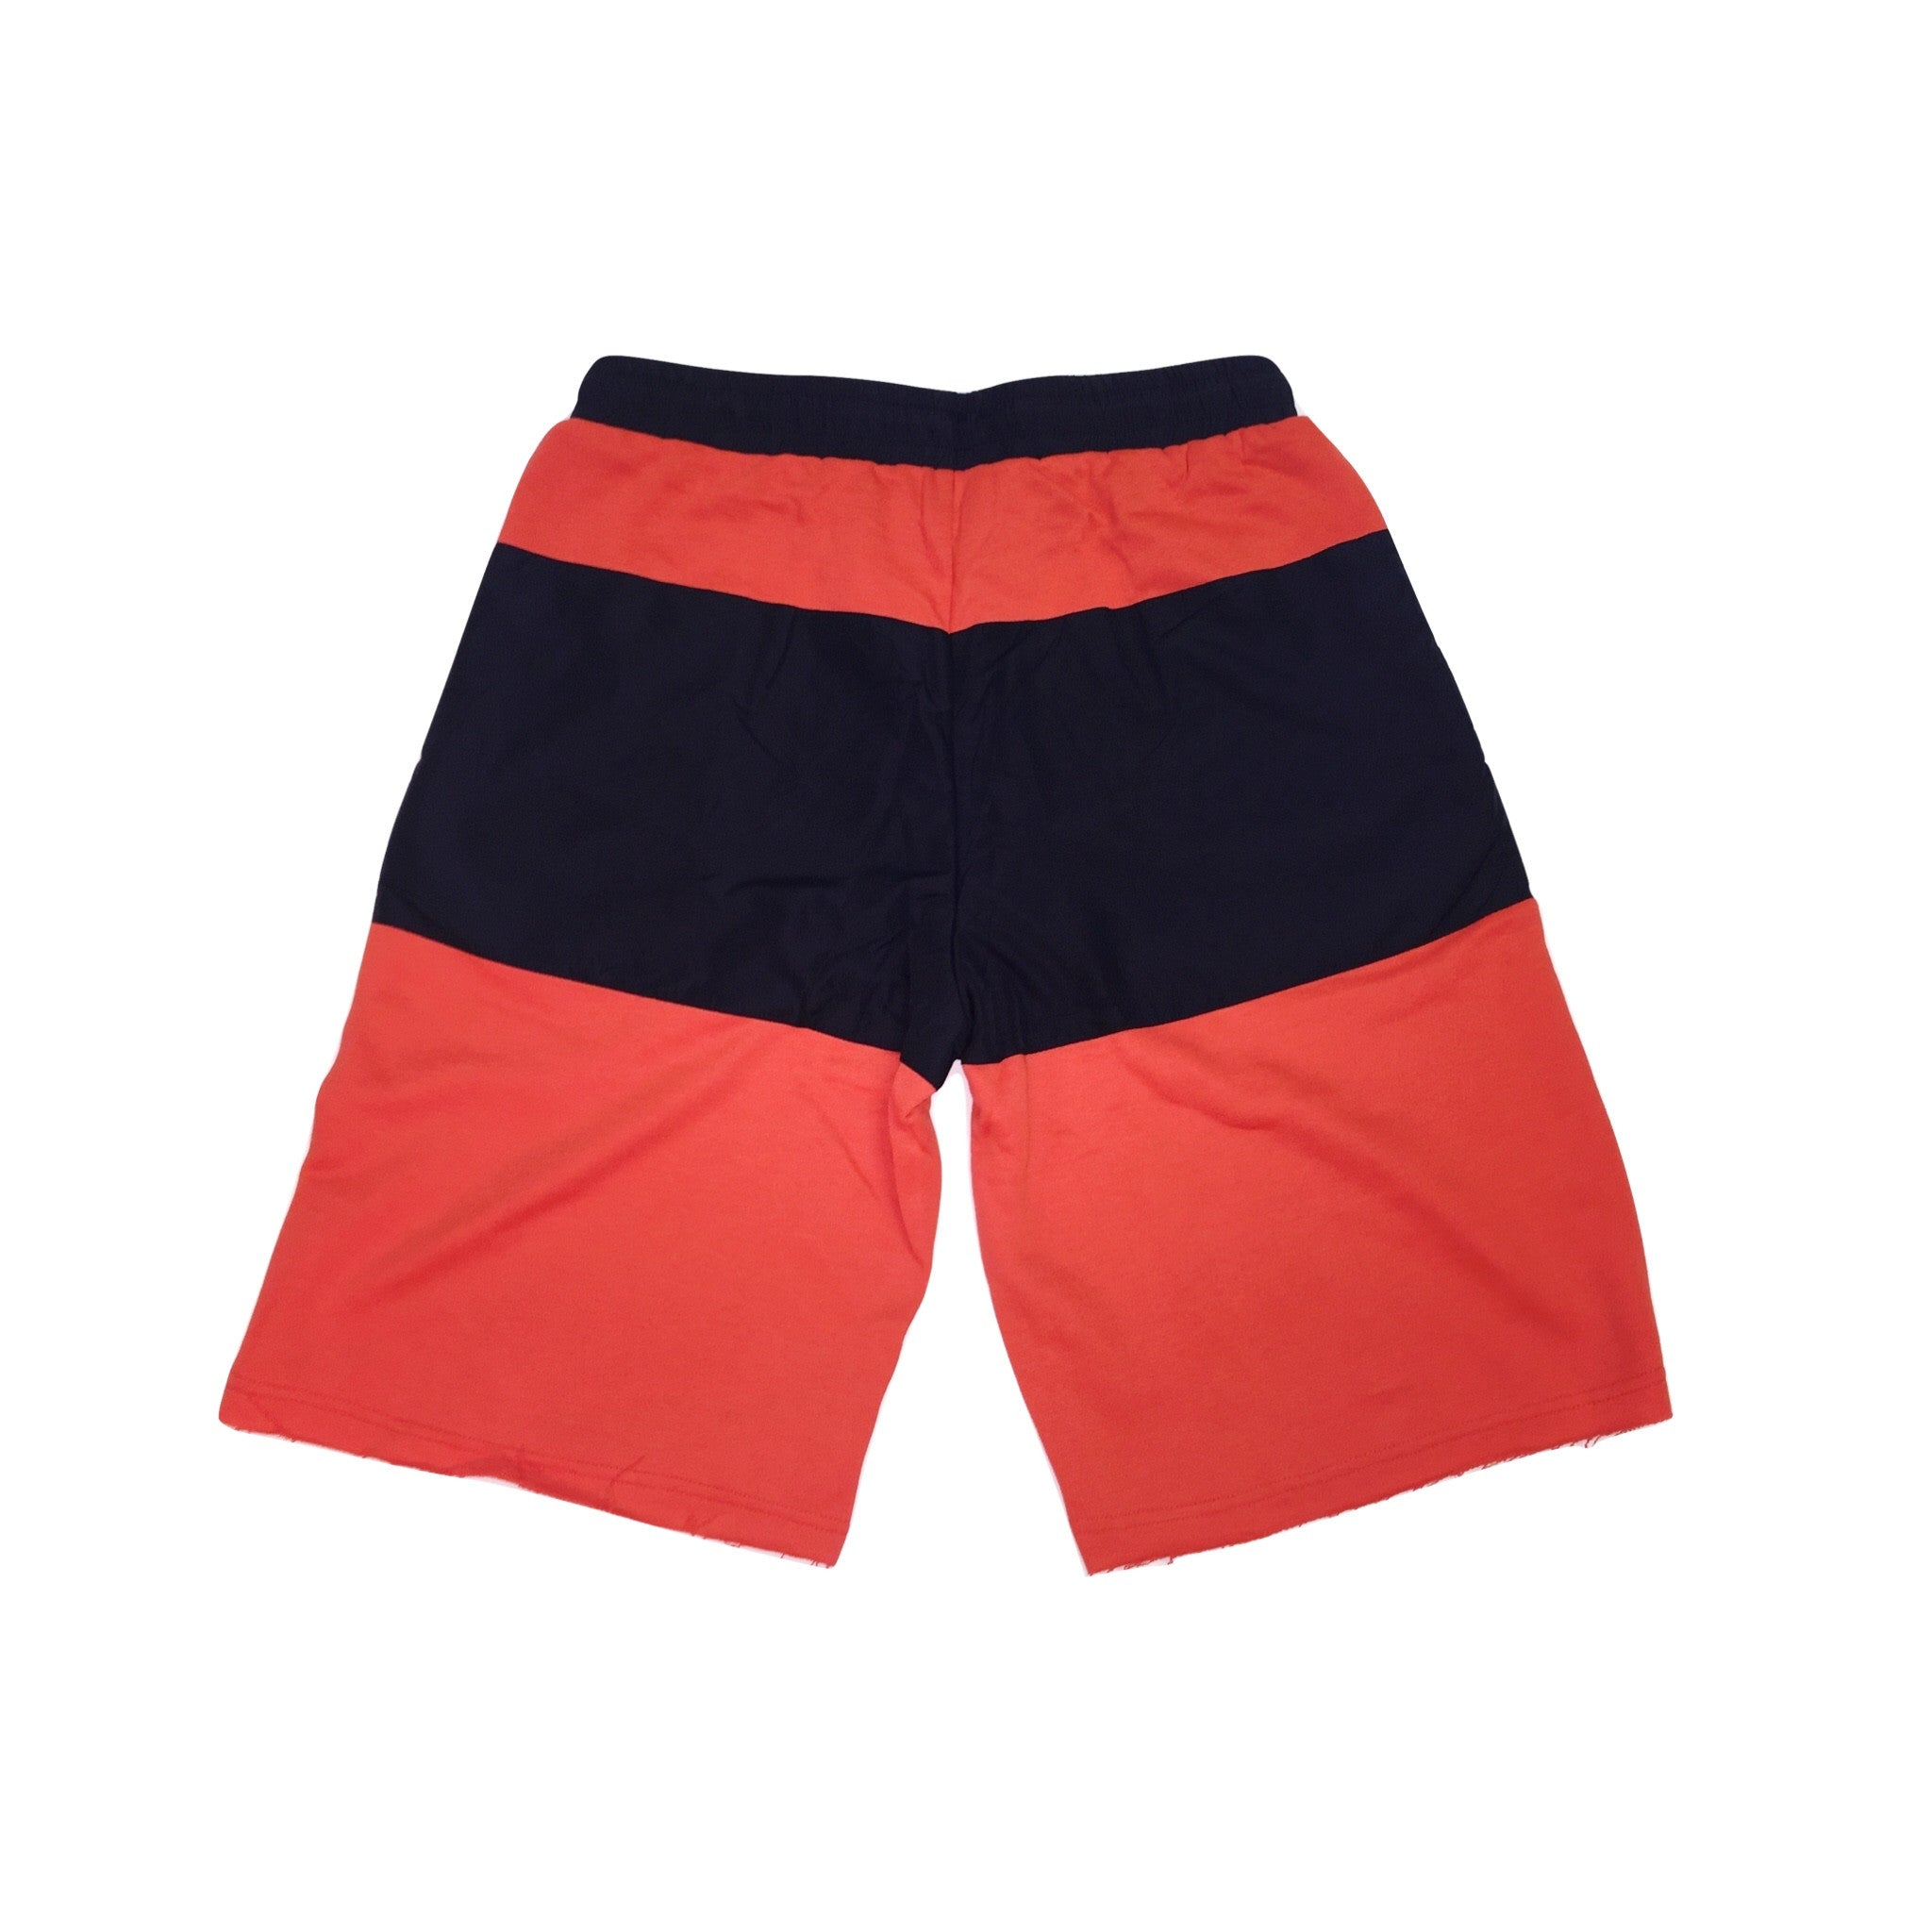 TORCHED BREAKER SHORTS - RED - KONTROLLED SUBSTANCE